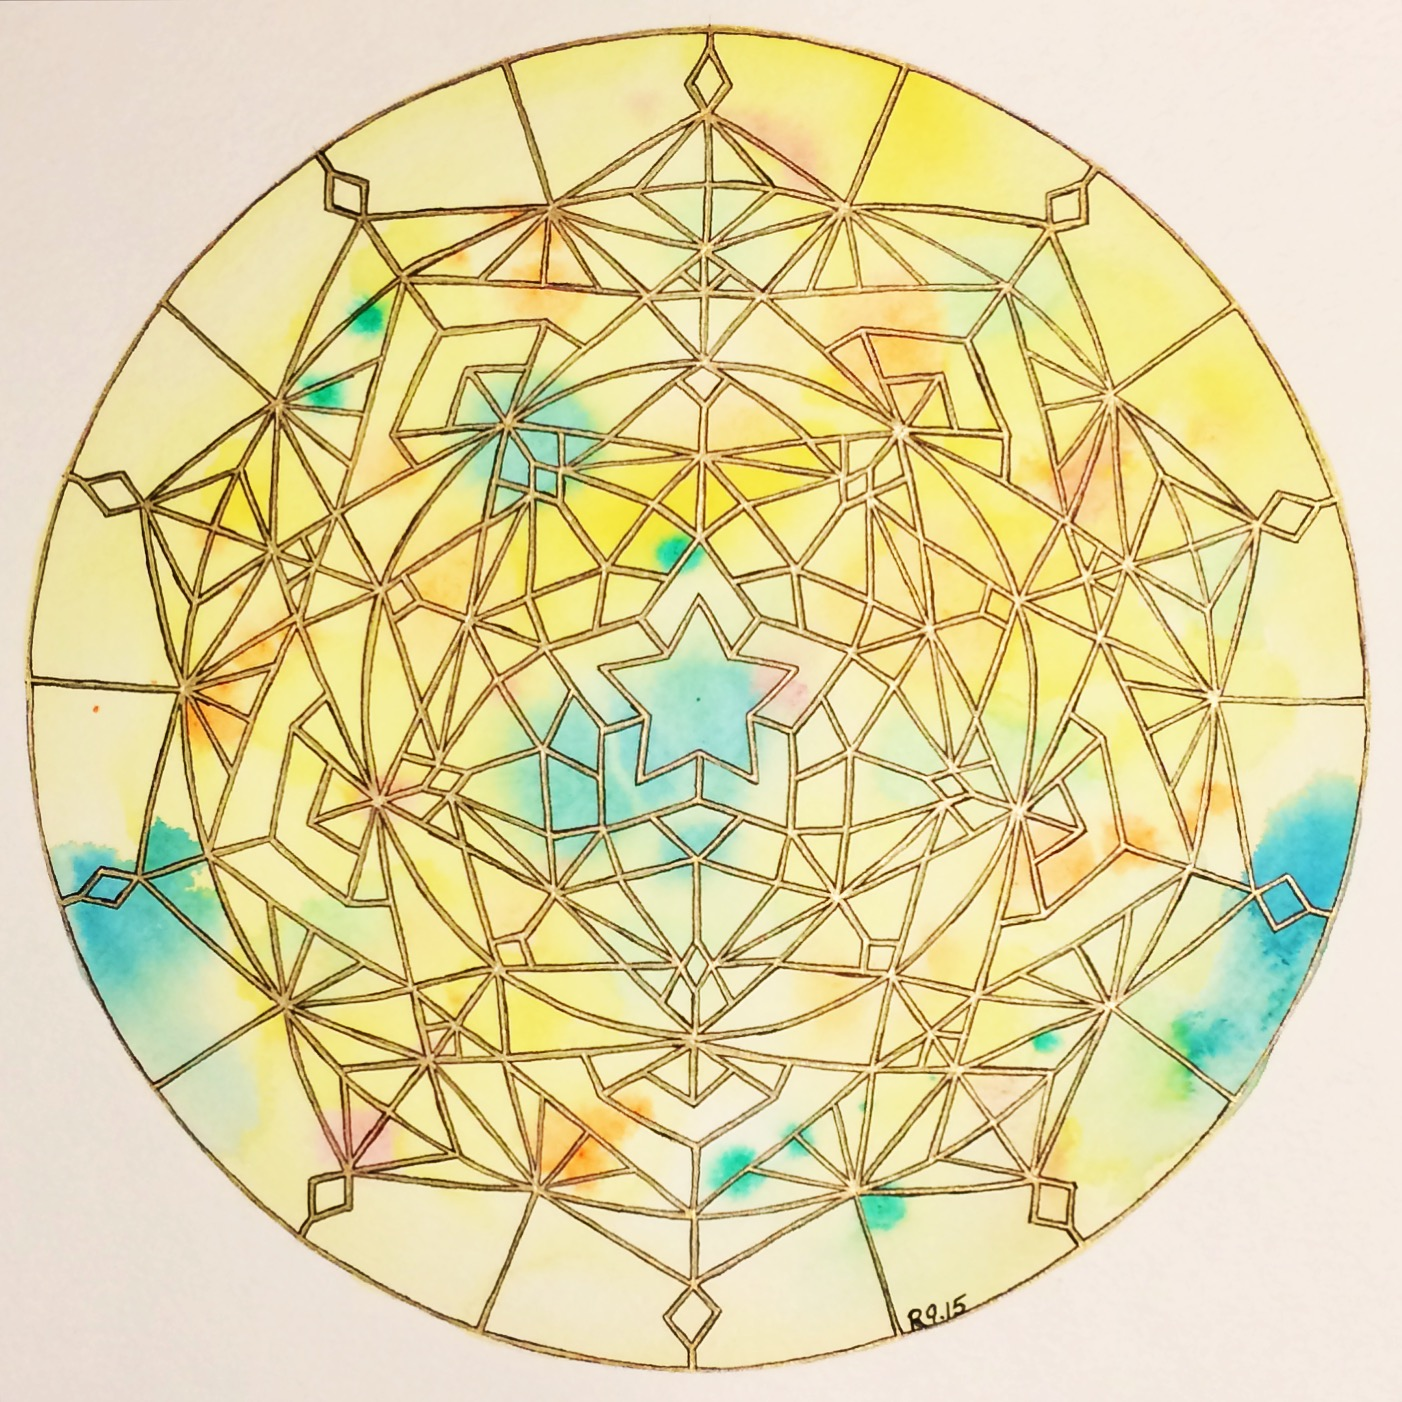 "Solar Plexus Mandala 2015. Watercolor and pen on 12"" x 12"" paper."